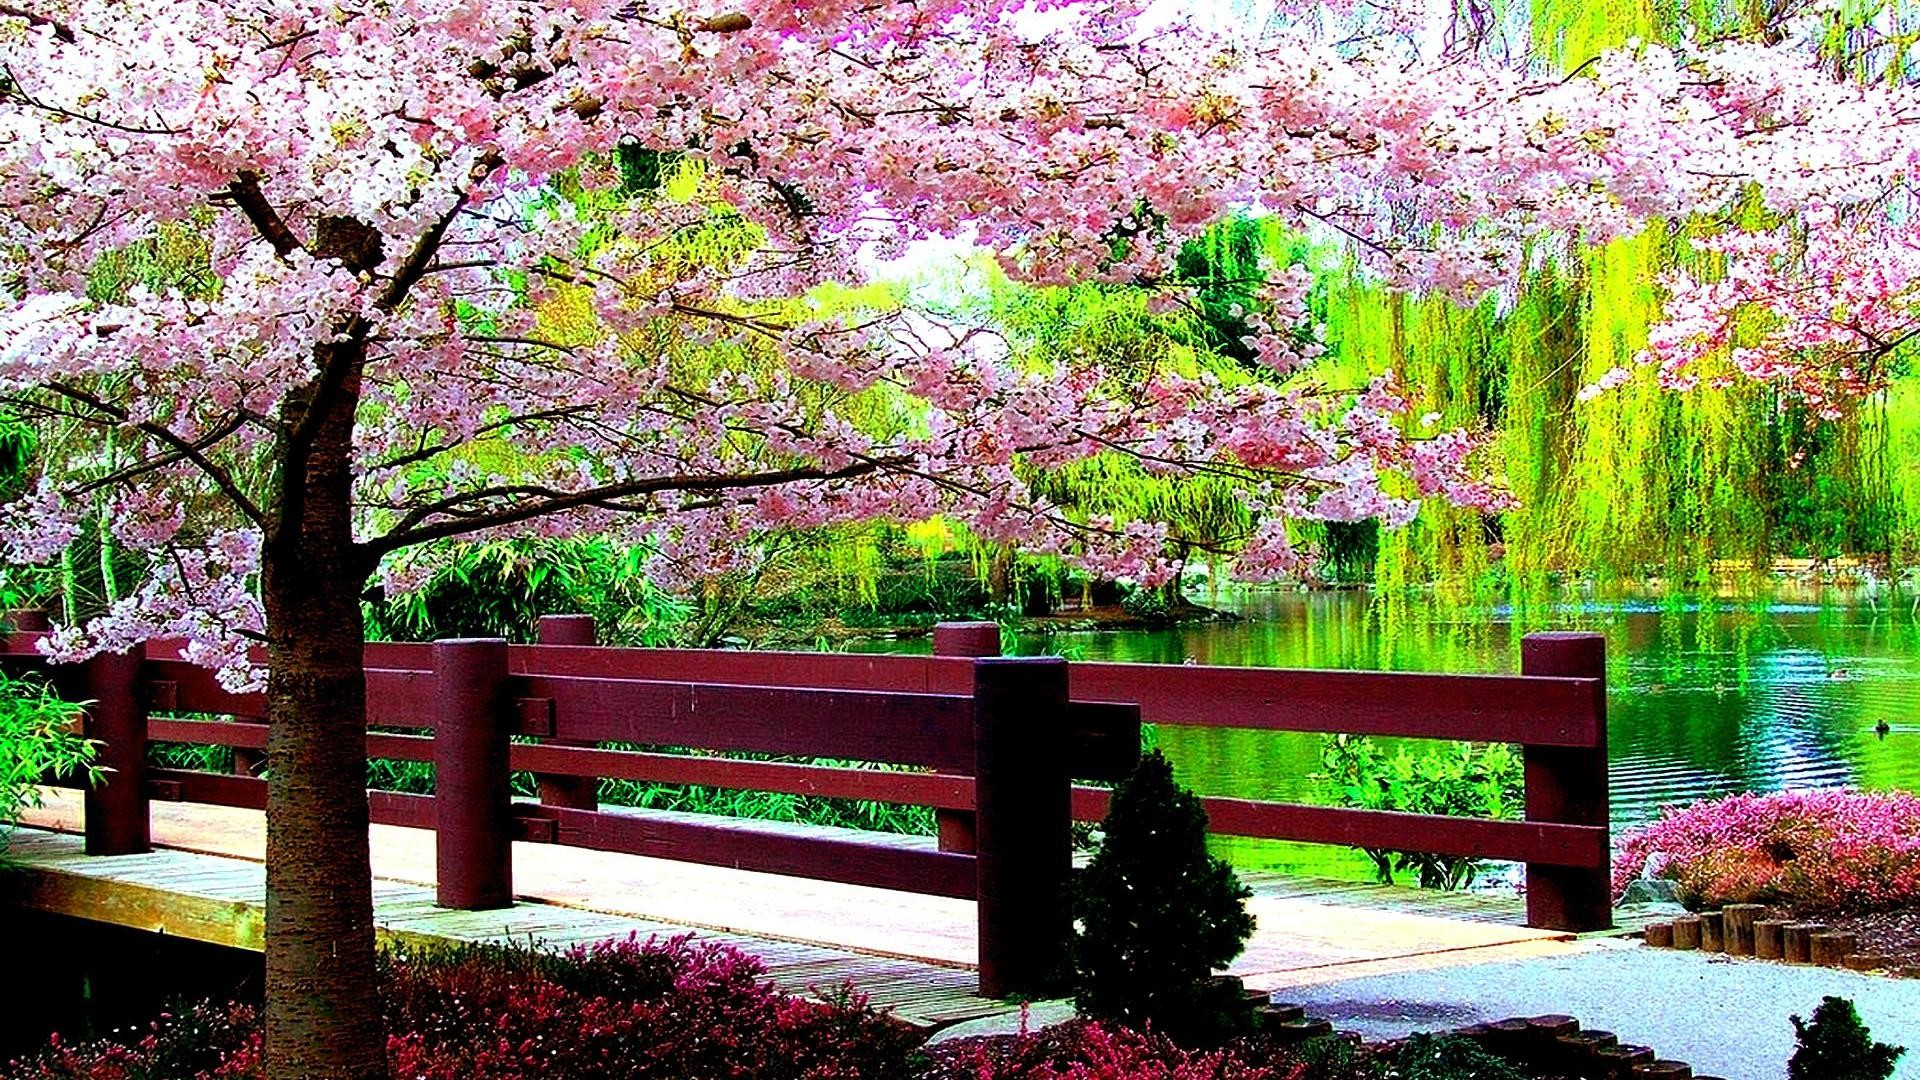 Res: 1920x1080, SPRING PARK WALLPAPER - (#91534) - HD Wallpapers - [wallpapersinhq.pw